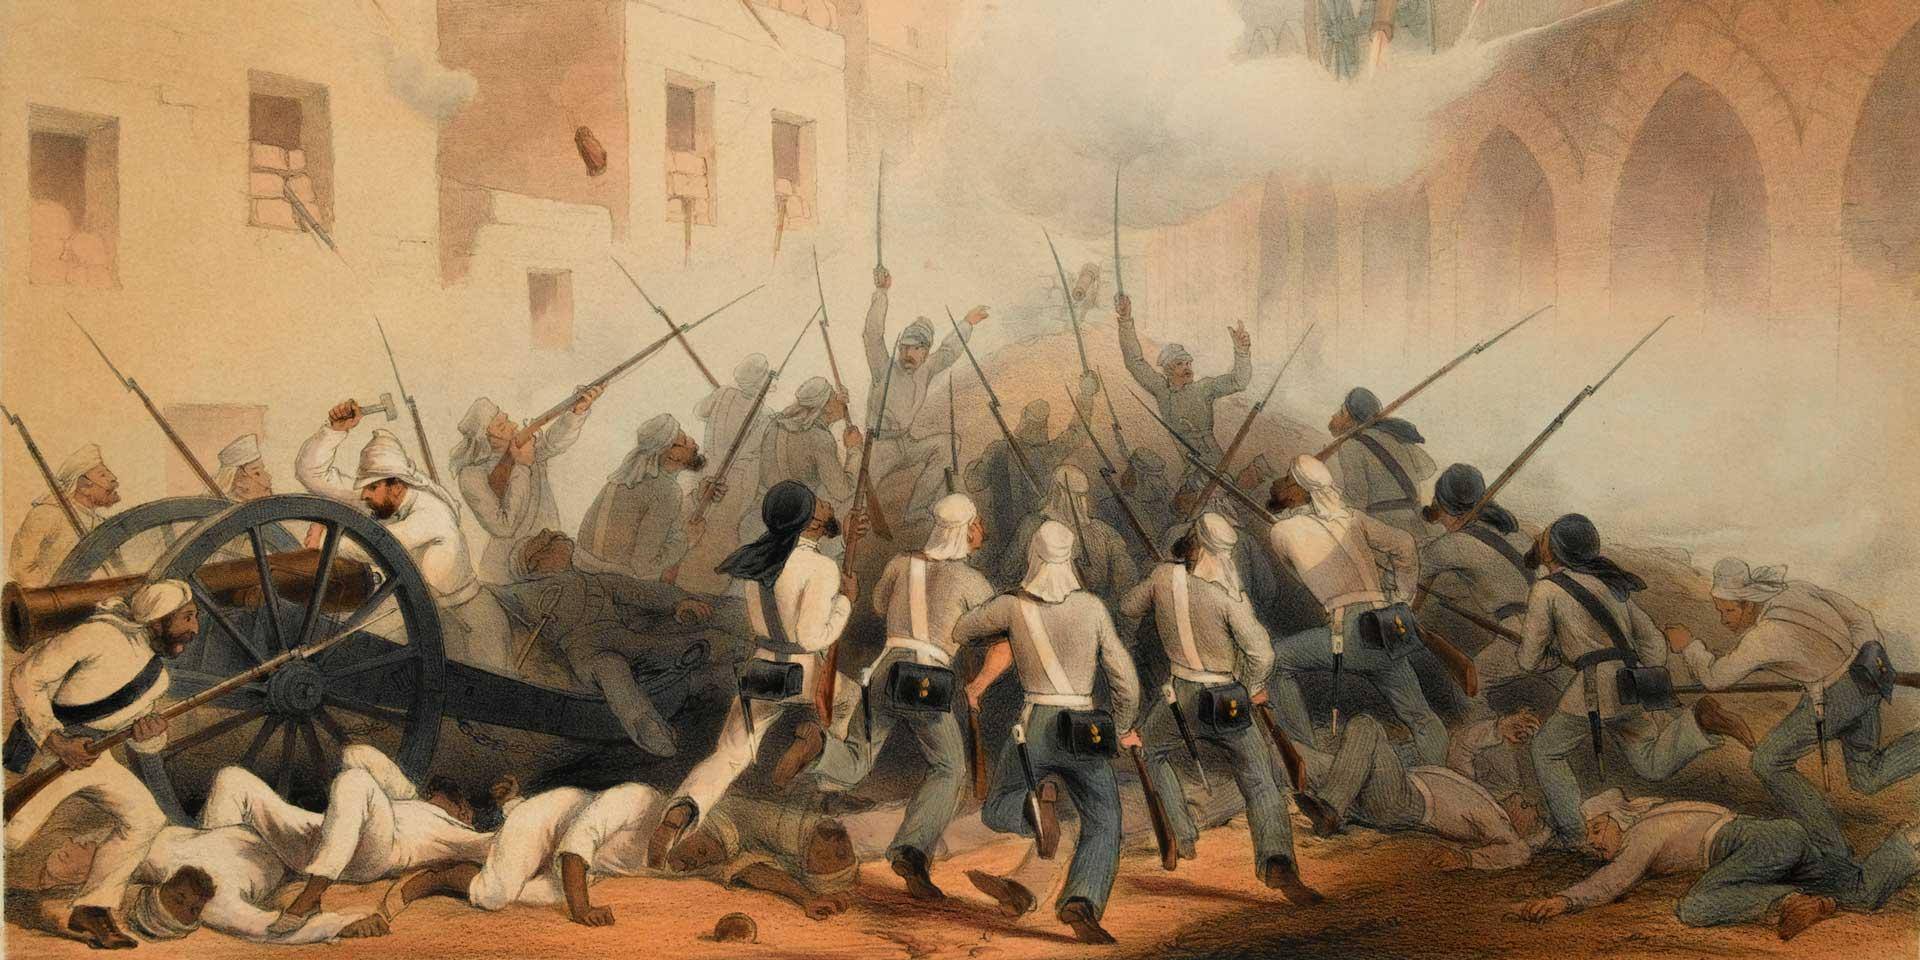 The Bengal Fusiliers at the storming of Delhi, 1857